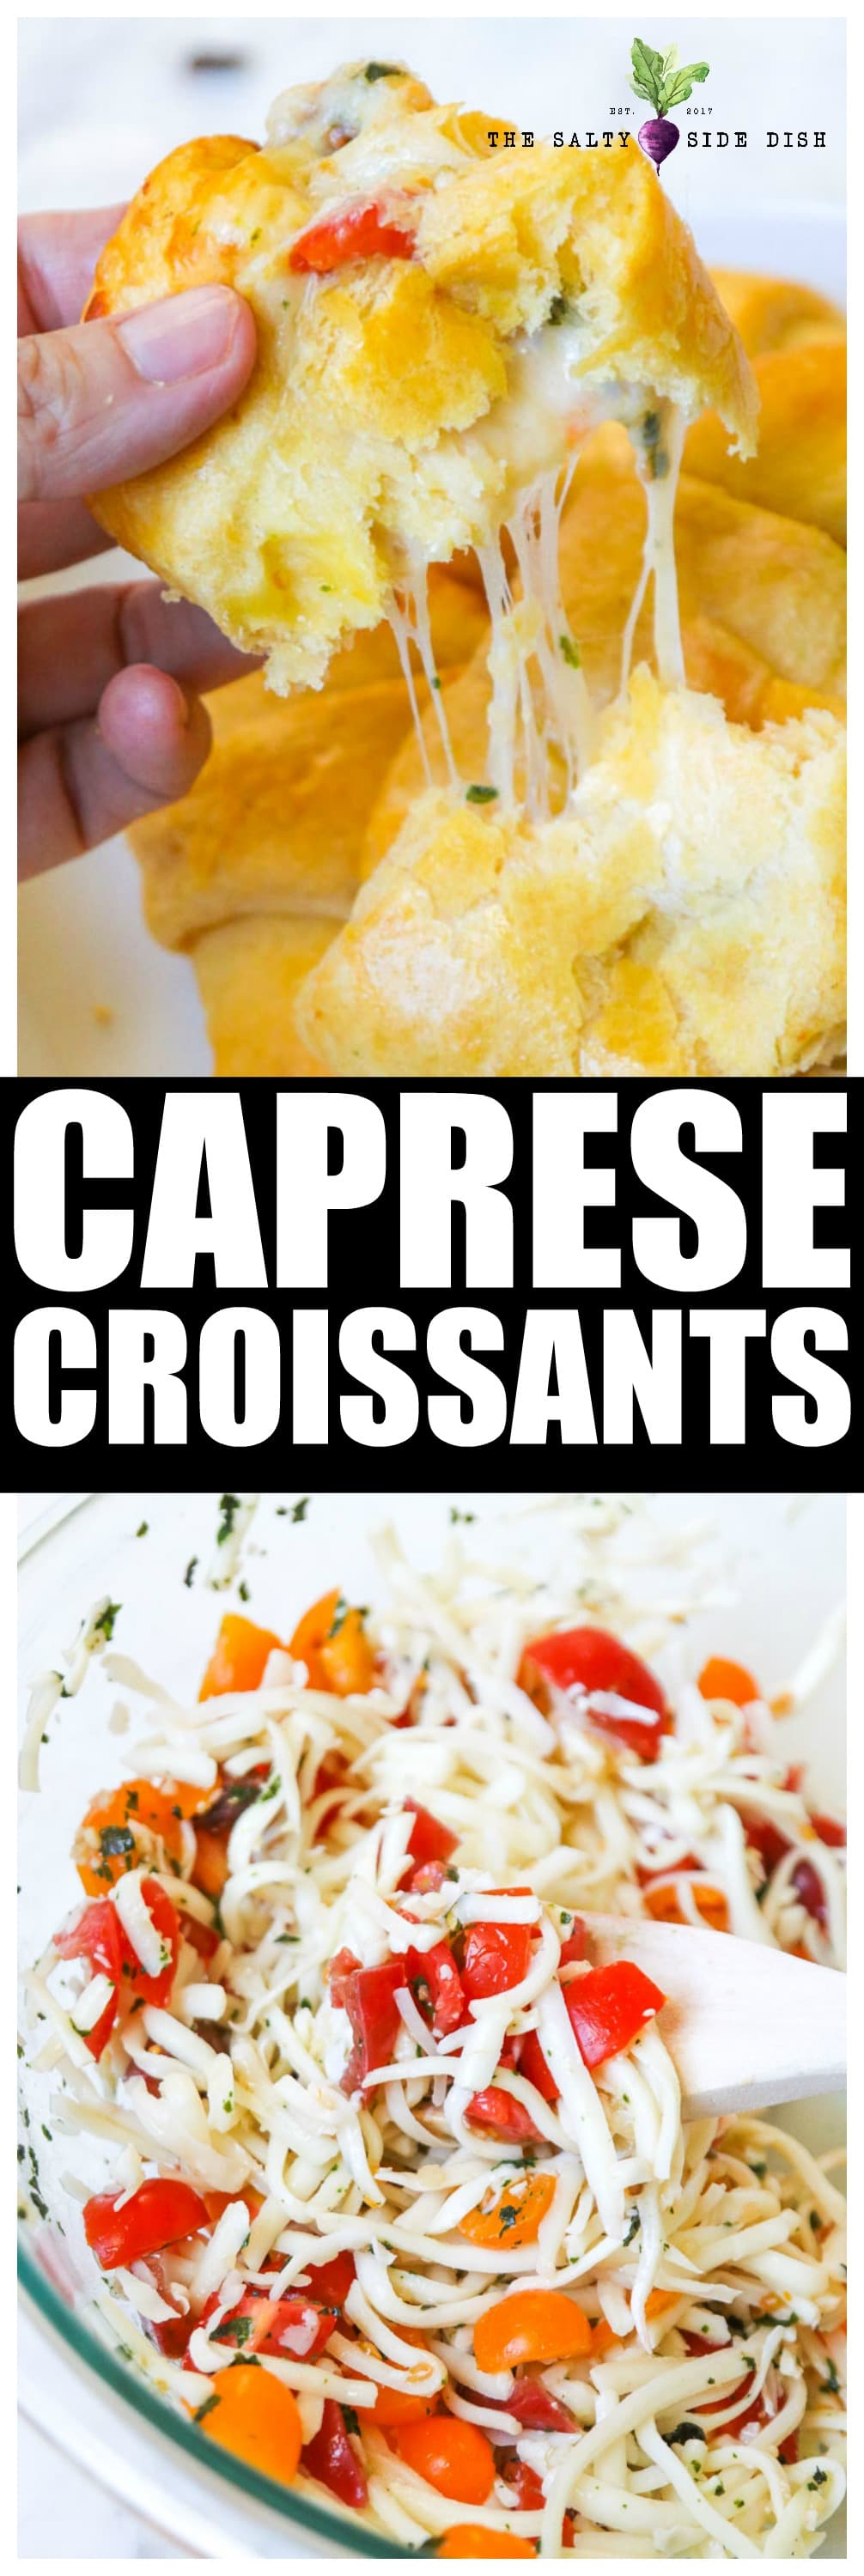 Caprese Croissants   Hot Melty Cheesy Appetizer perfection   Easy 10 minute side dish with crusty flaky bread and pull apart cheese #ad #sargento #cheese #appetizer #saltysidedish #sidedish #recipe